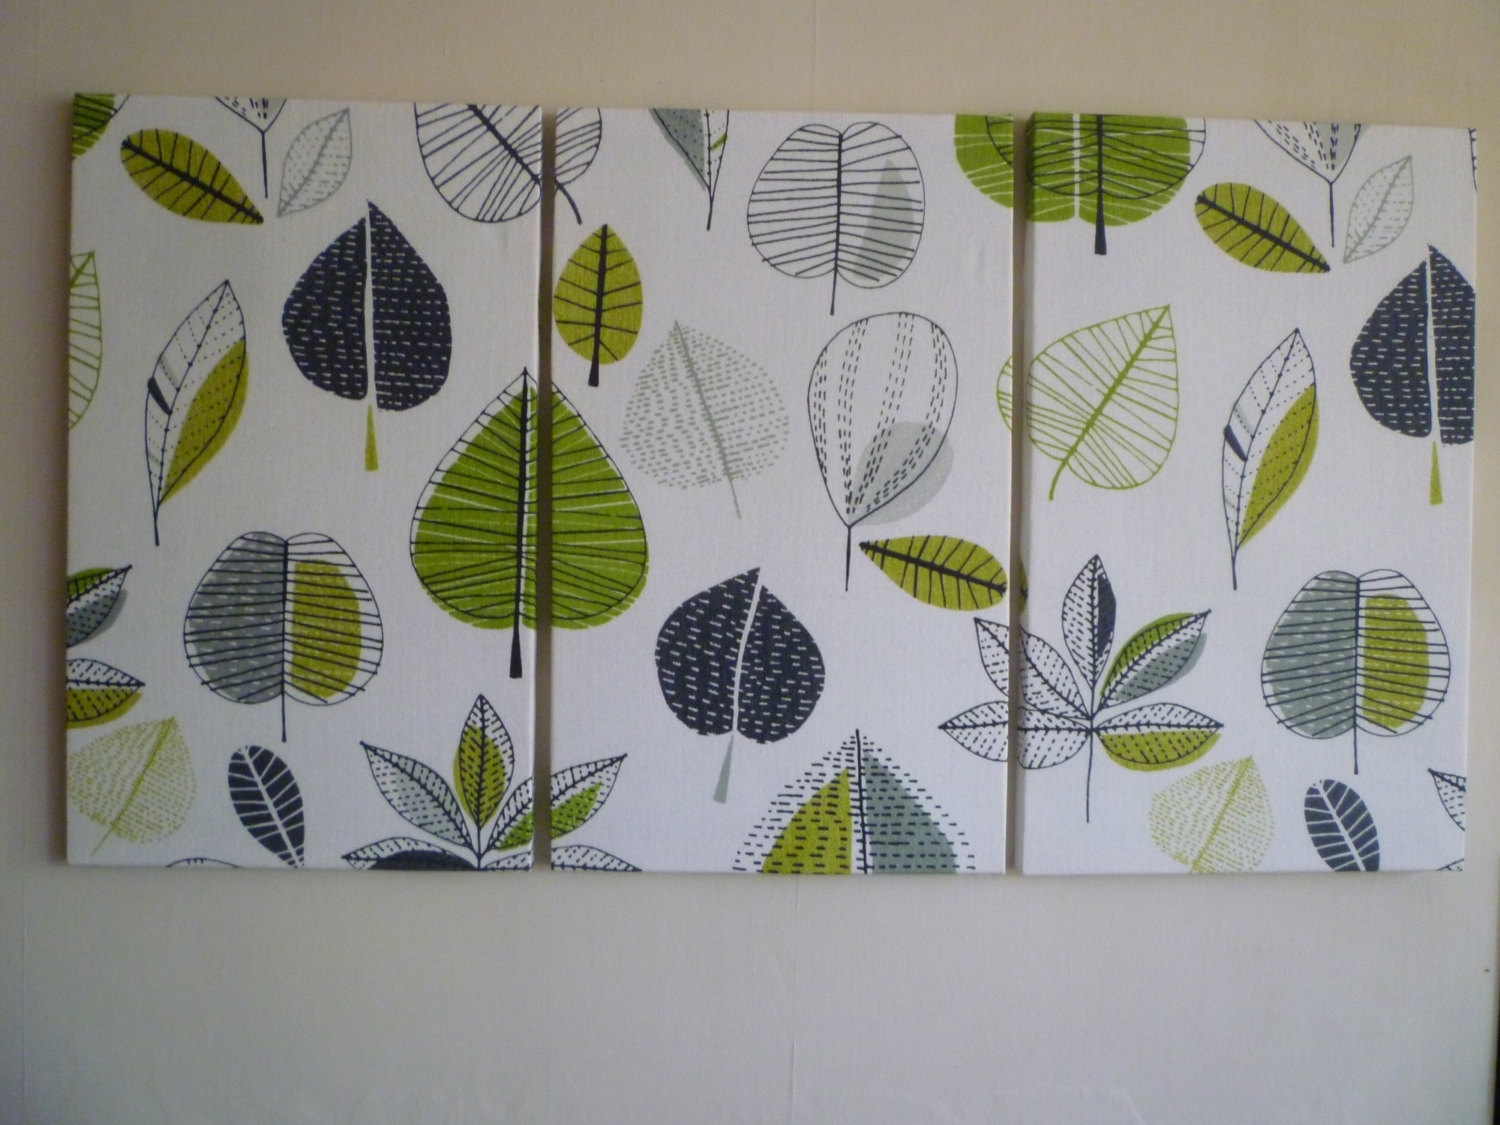 Wall Art Designs: Fabric Wall Art Big Lime Green Fabric Wall Art In Most Recent Contemporary Fabric Wall Art (View 2 of 15)